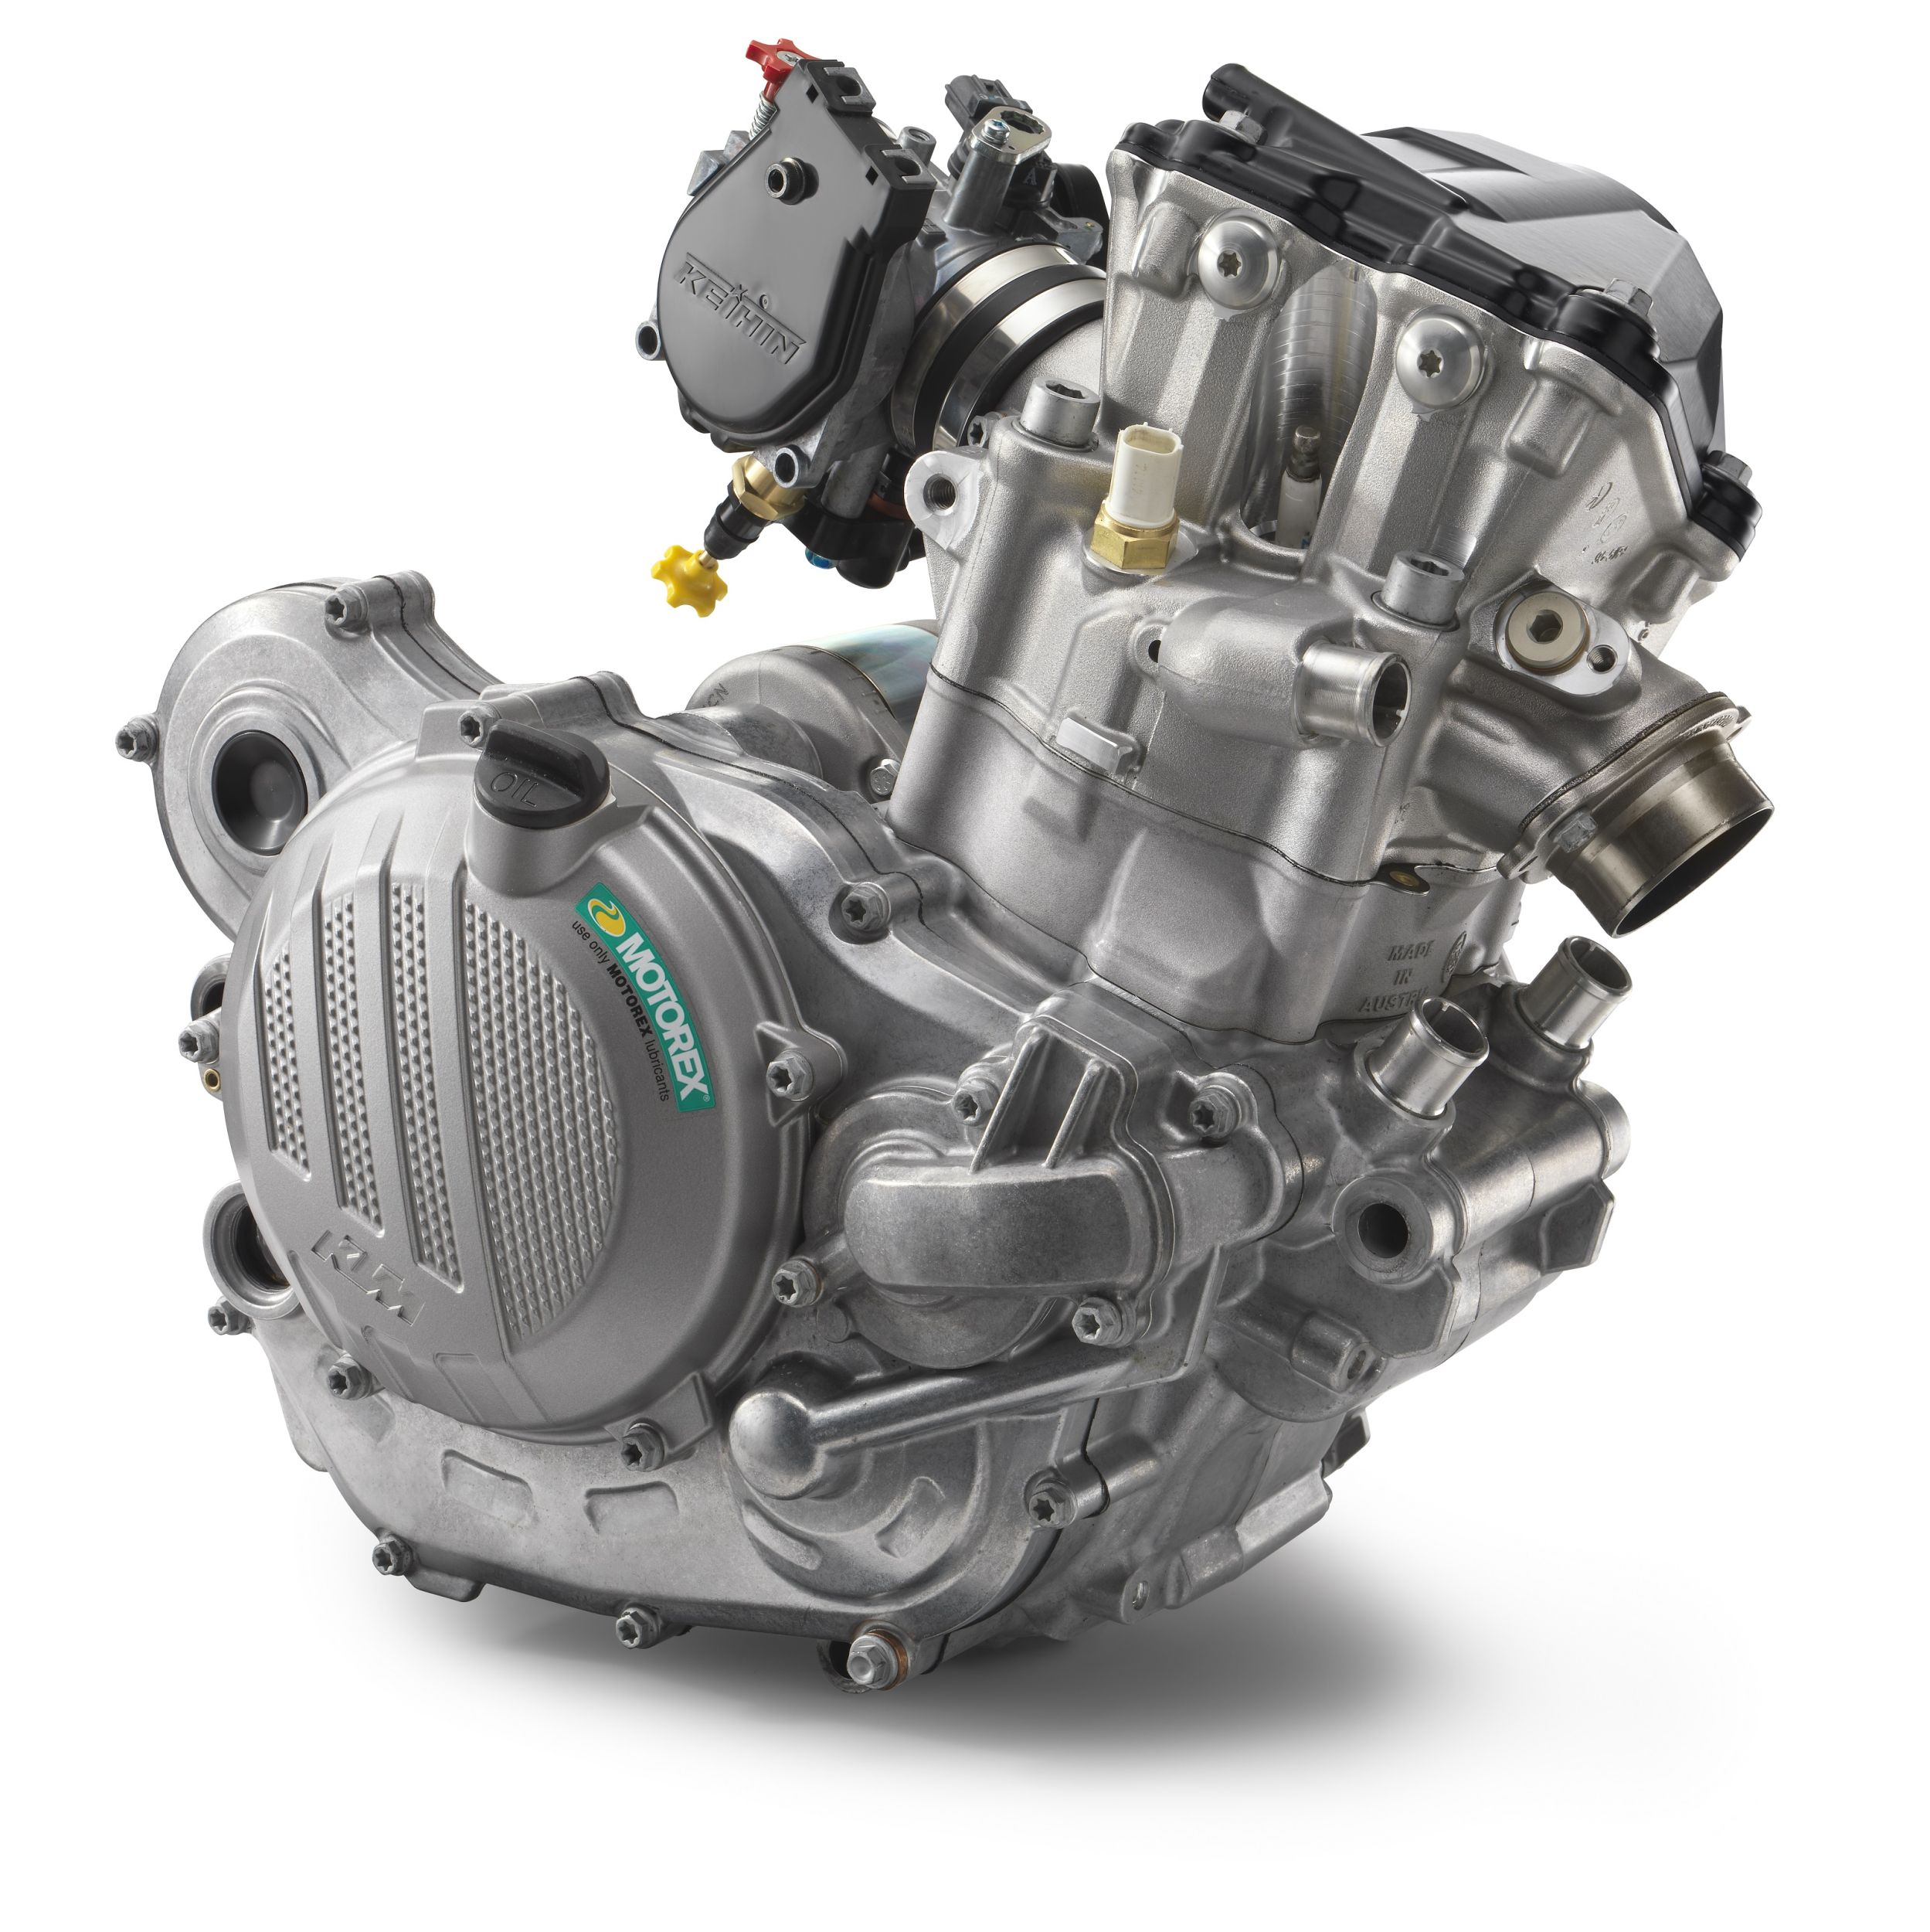 KTM 450 EXC-F - All technical Data of the Model 450 EXC-F